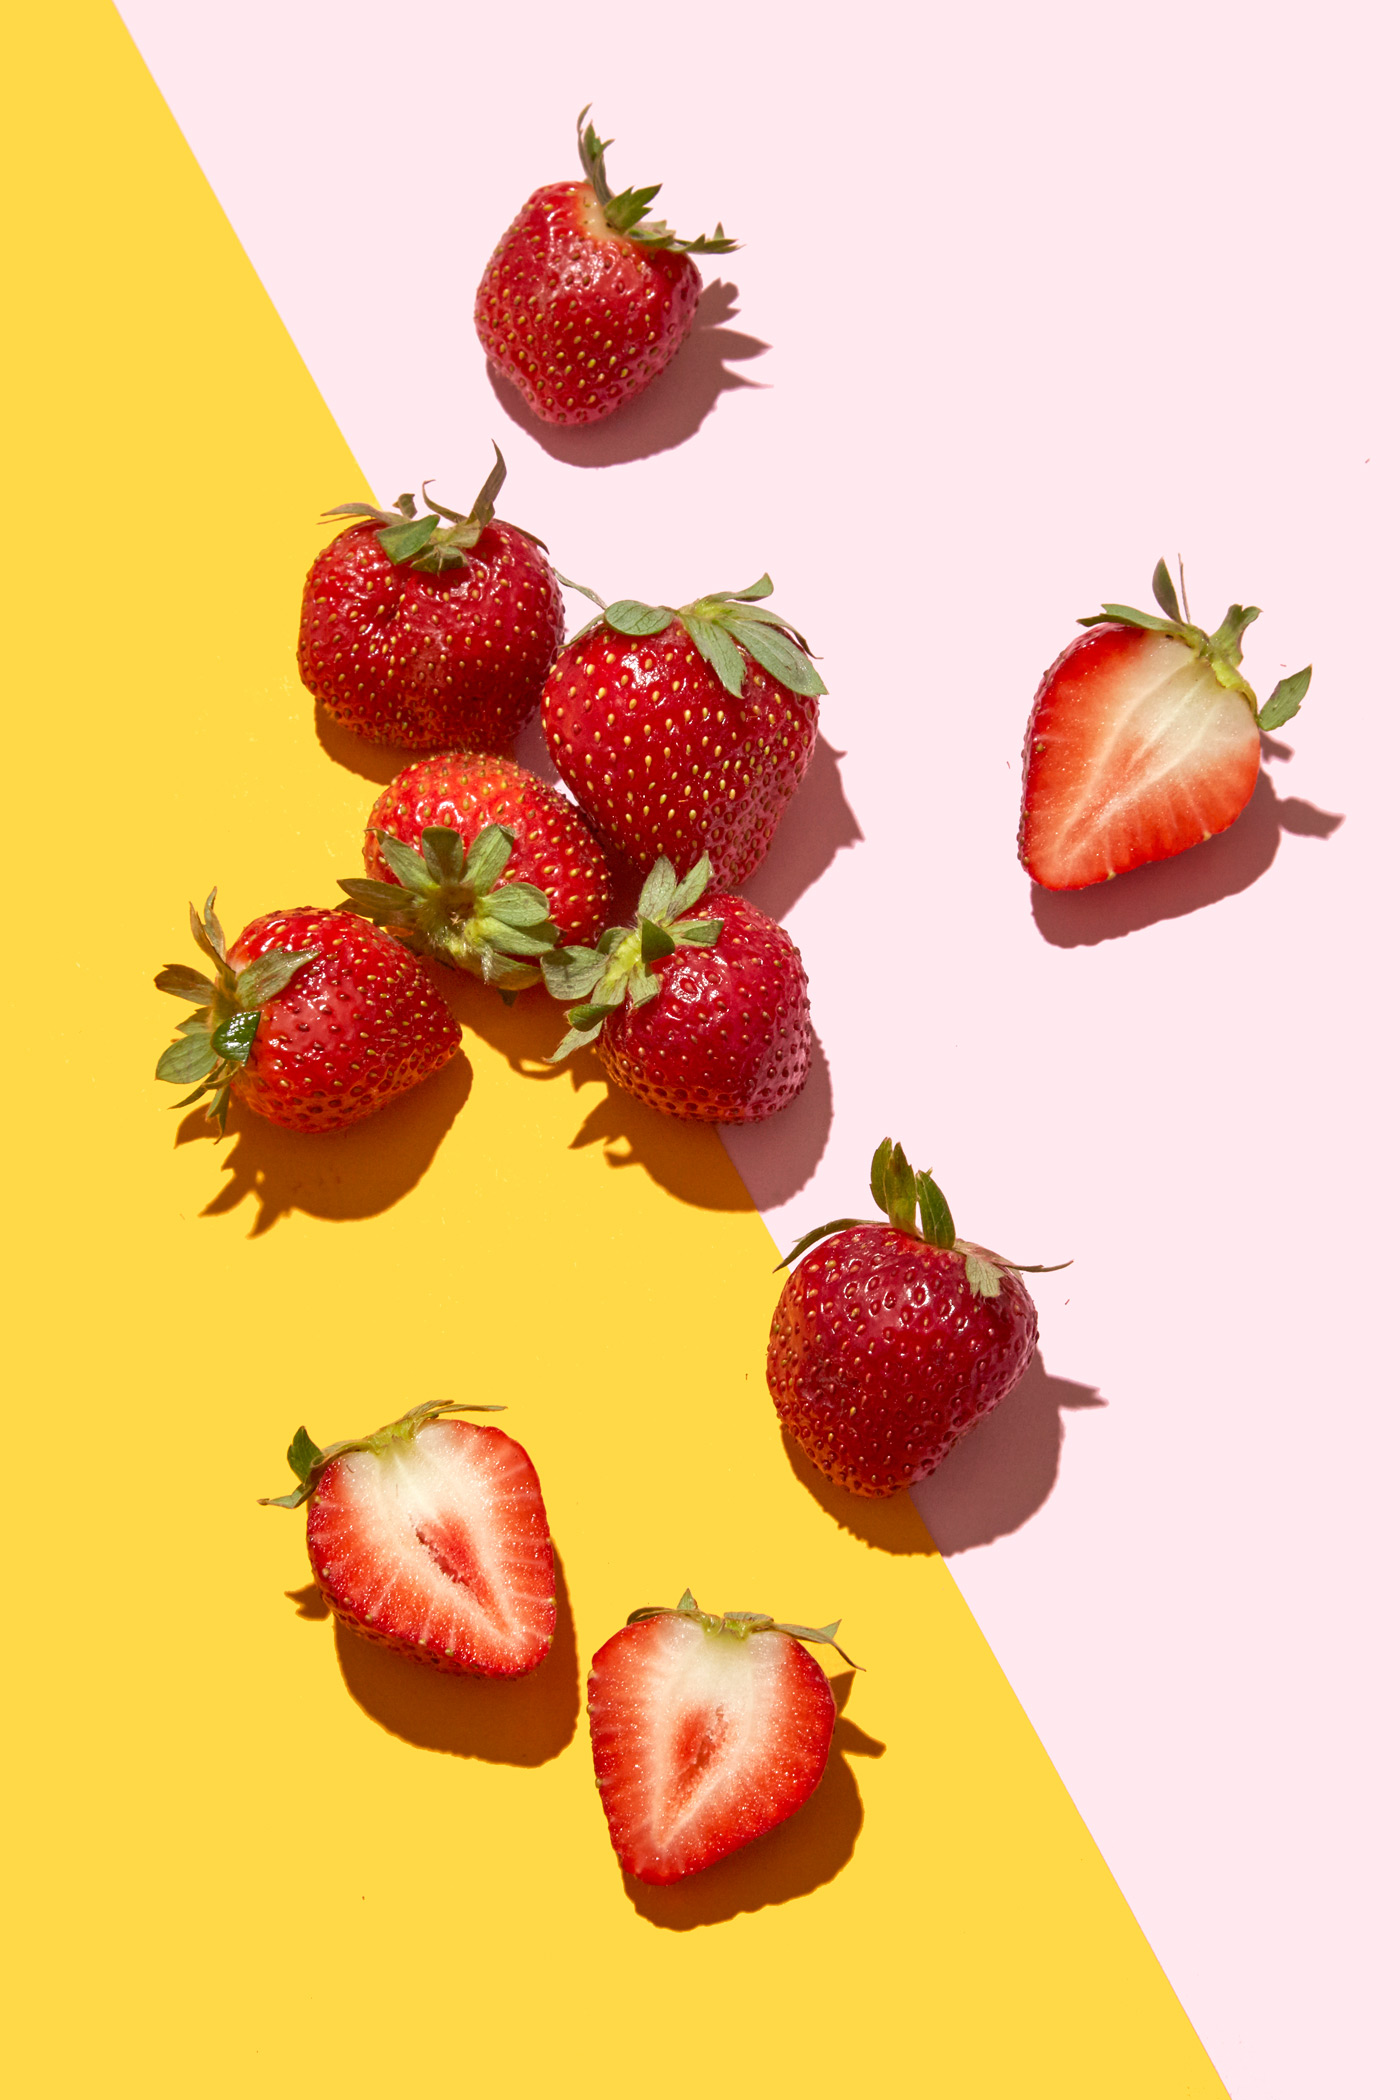 healthiest foods, health food, diet, nutrition, time.com stock, strawberries, berry